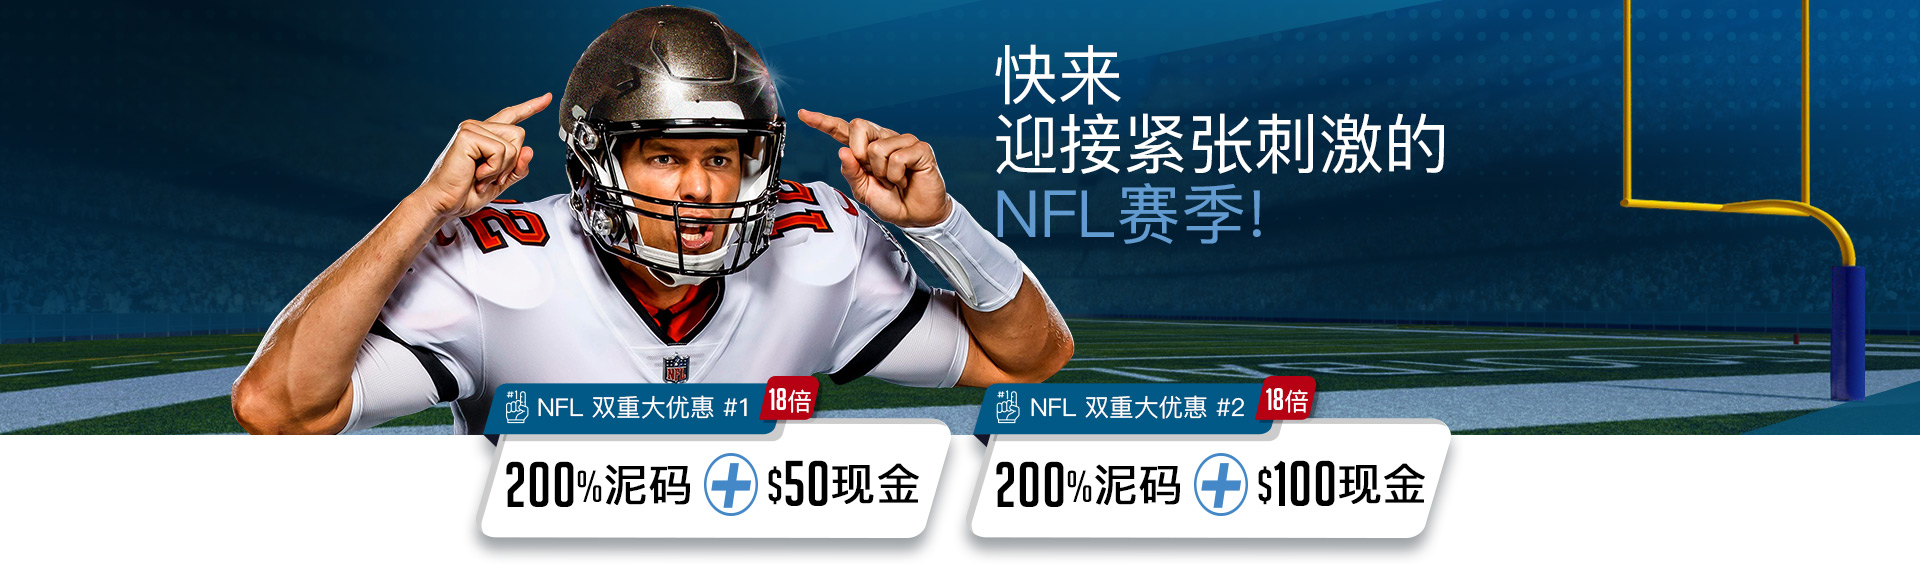 NFL Dual Action